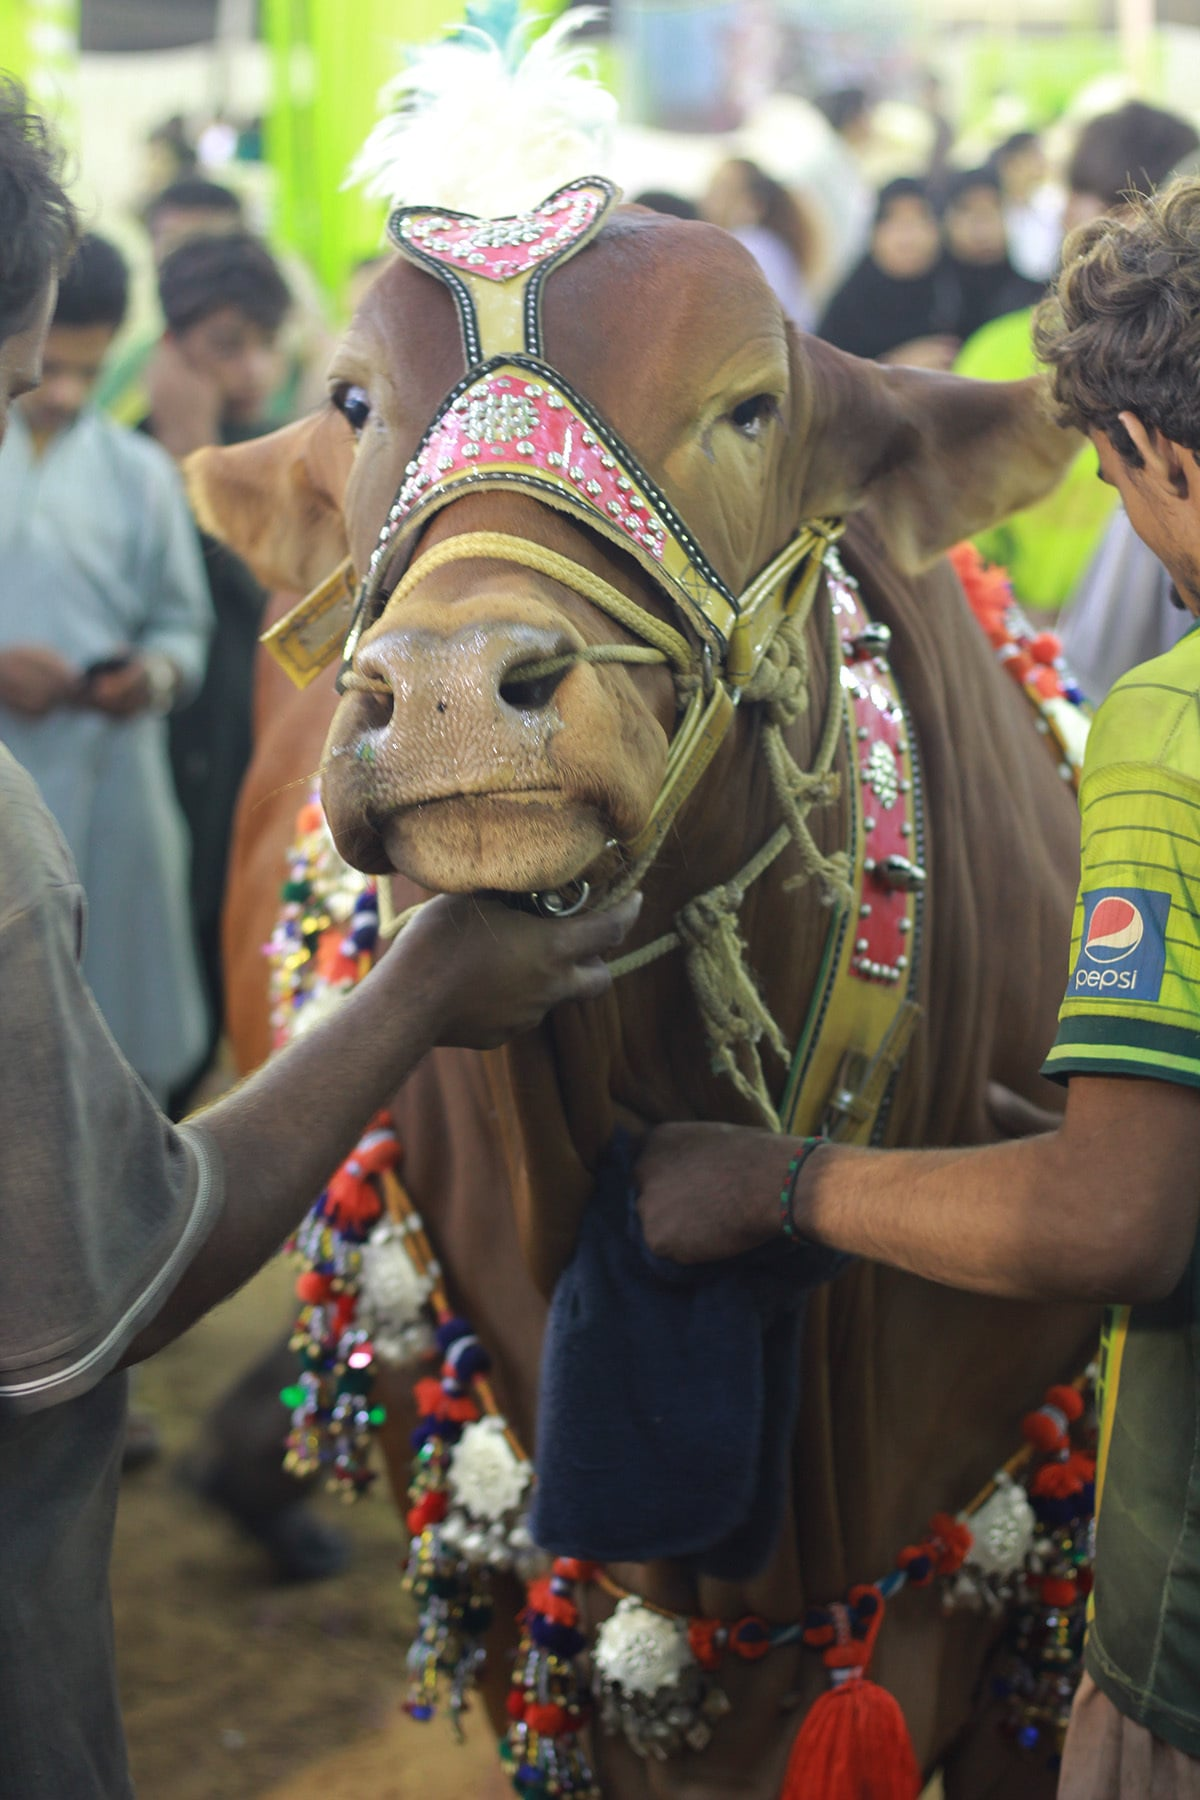 One of the best breeds is from Cholistan, Punjab. —Adeel Ahmed